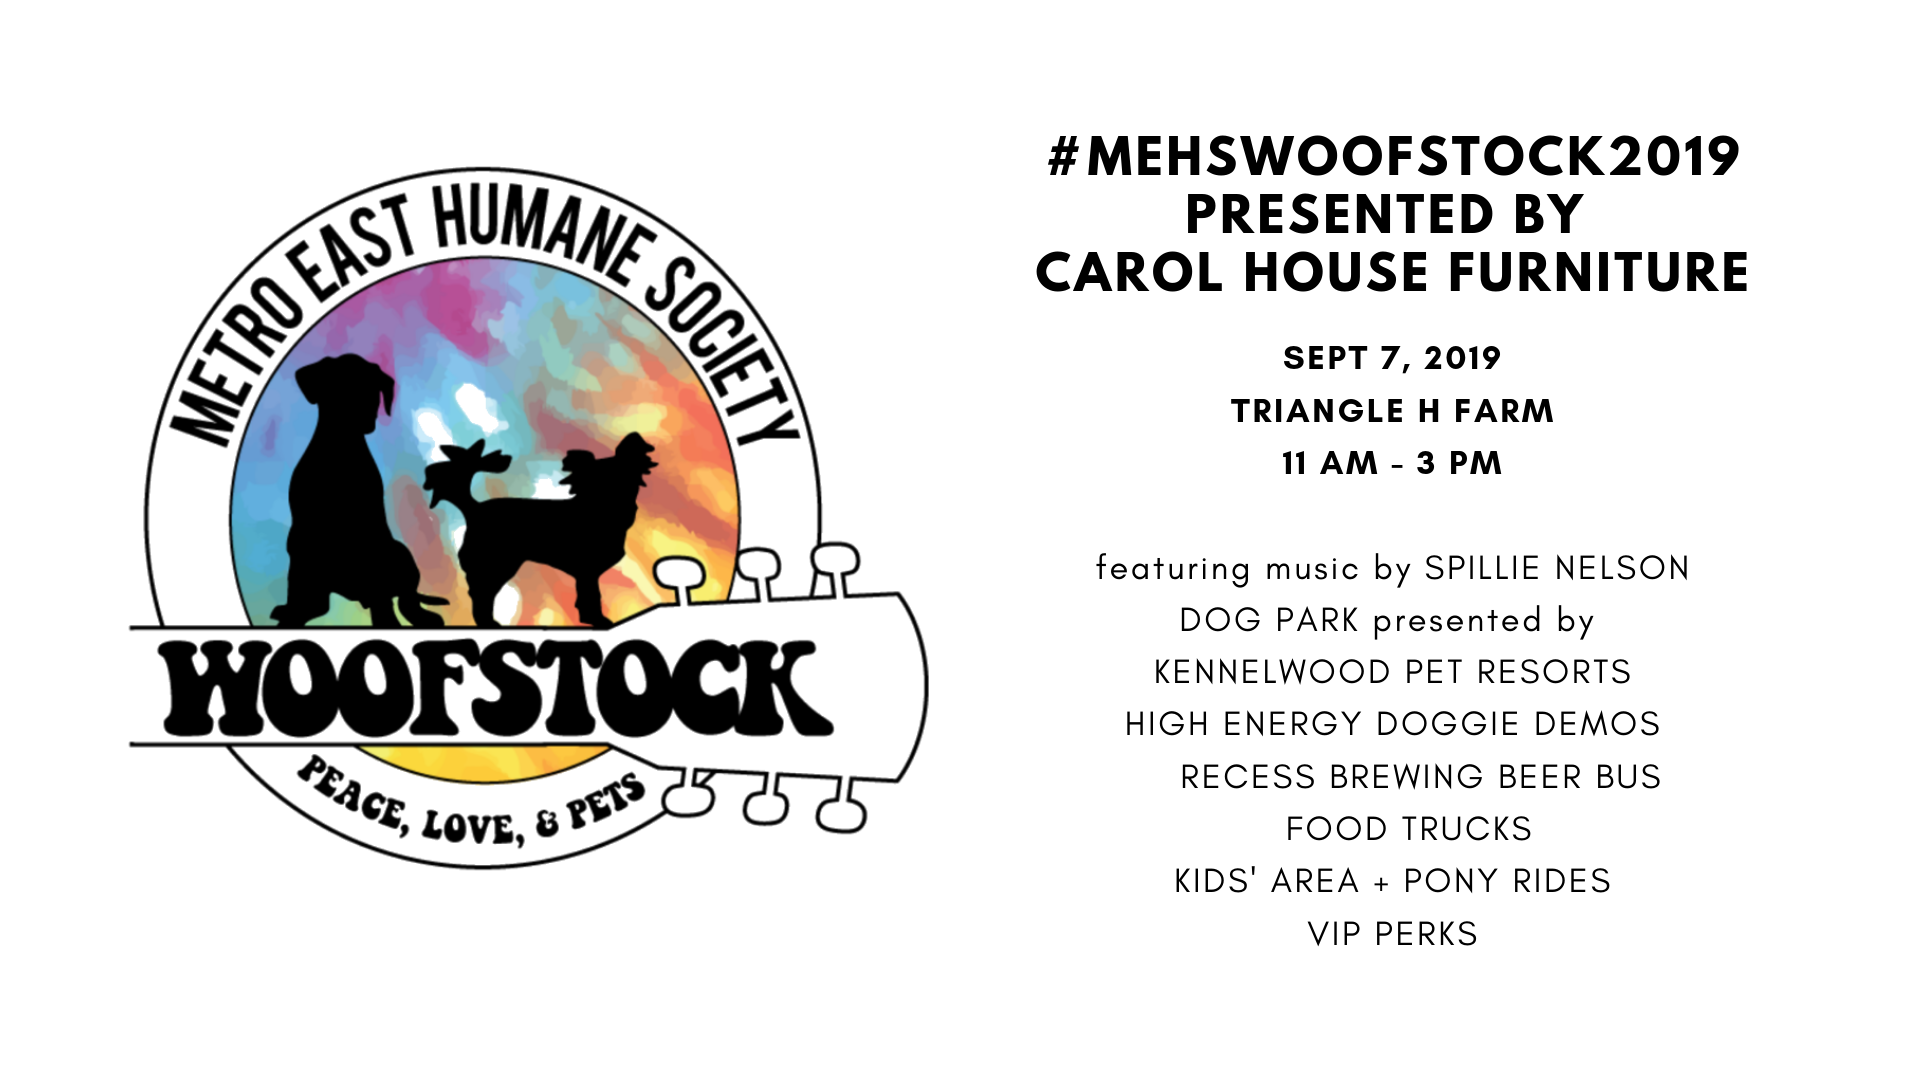 Mehs Woofstock 2019 Presented By Carol House Furniture